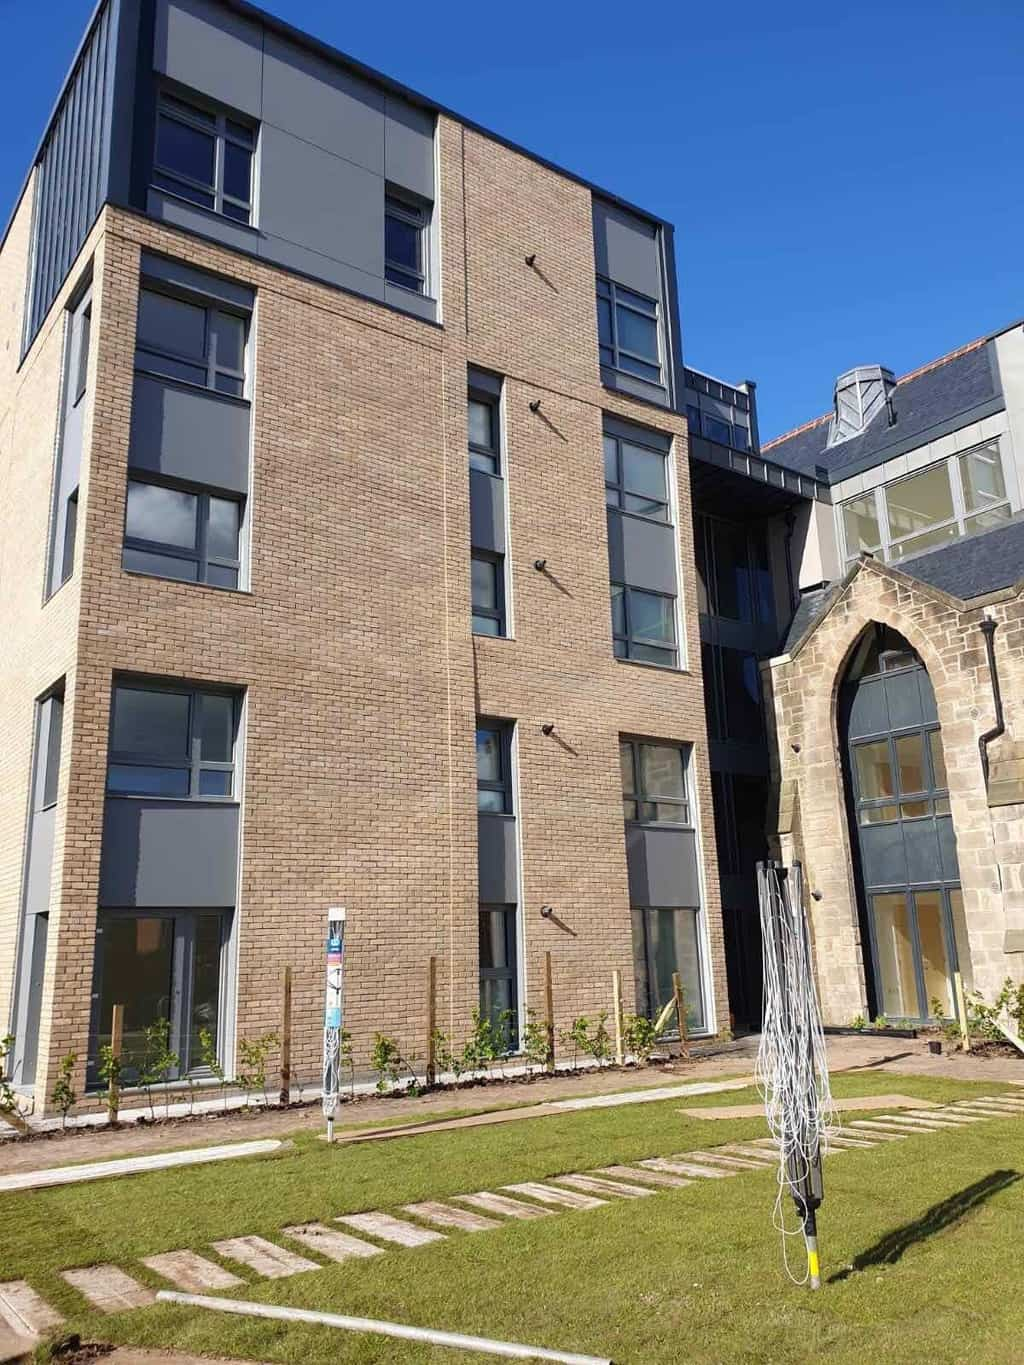 Carntyne Church Passivhaus Flats, Glasgow with ULTRA triple glazed timber windows from Green Building Store